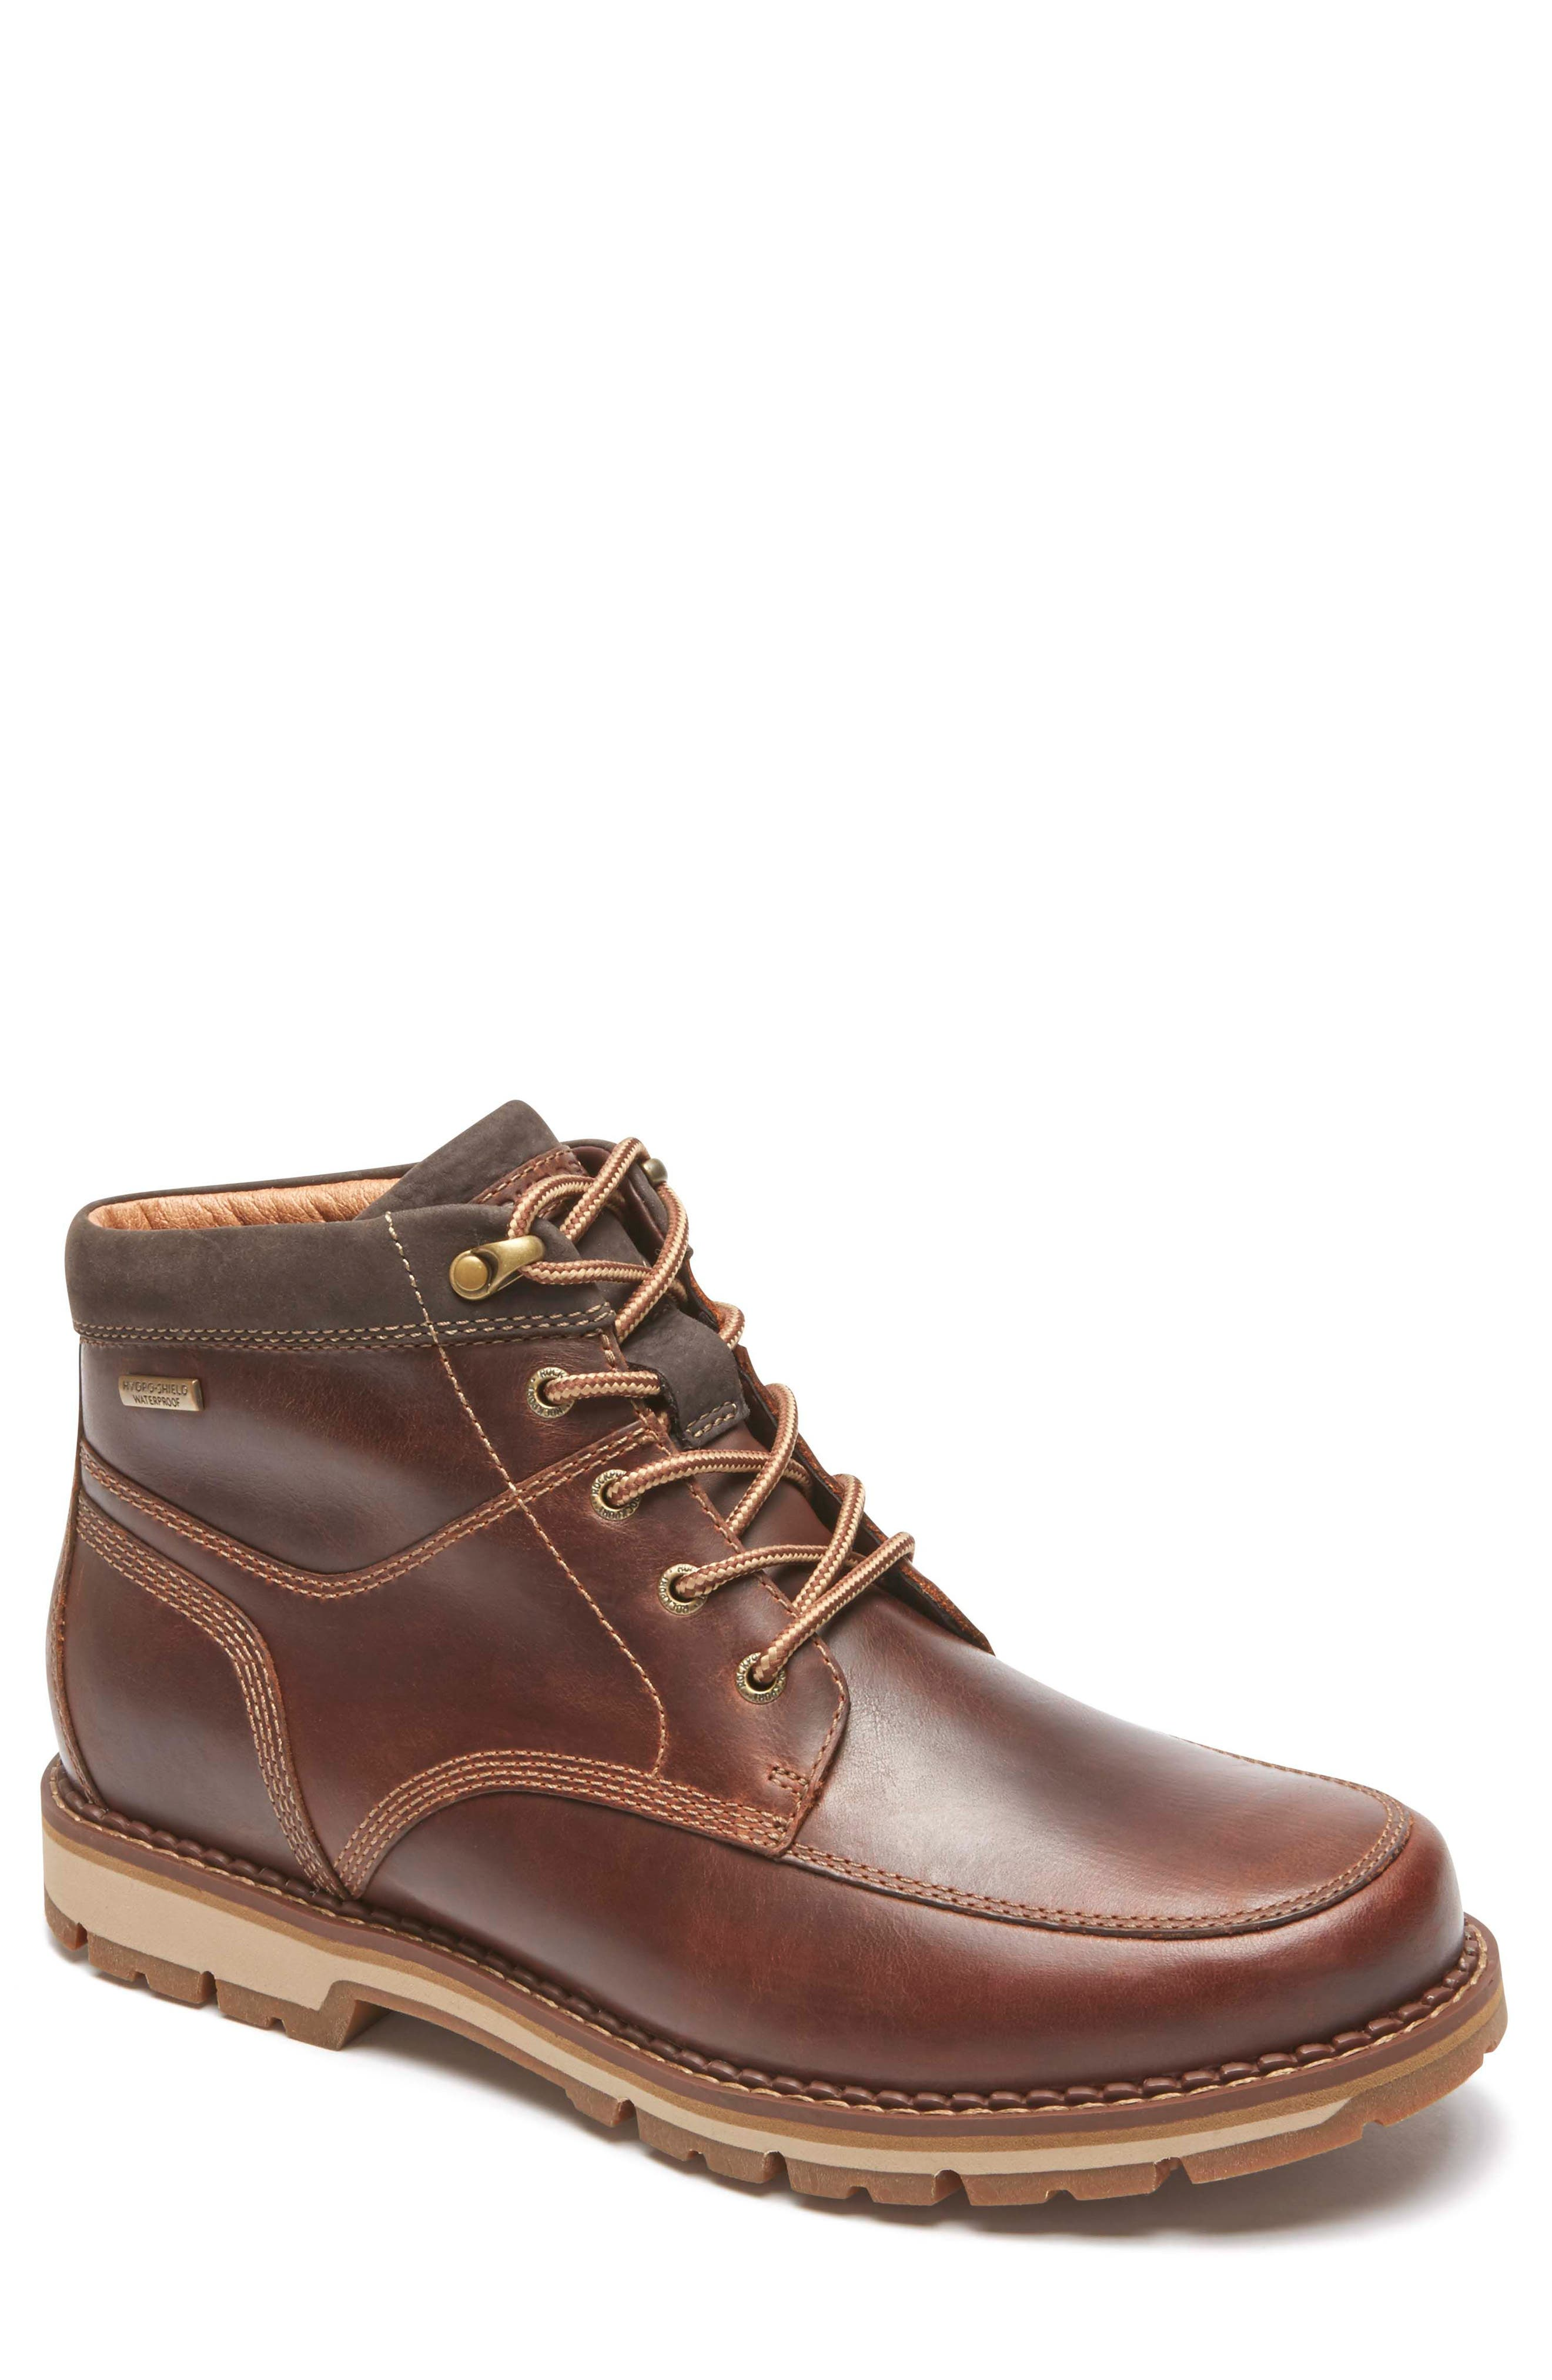 Centry Moc Toe Boot,                             Main thumbnail 1, color,                             Brown Leather